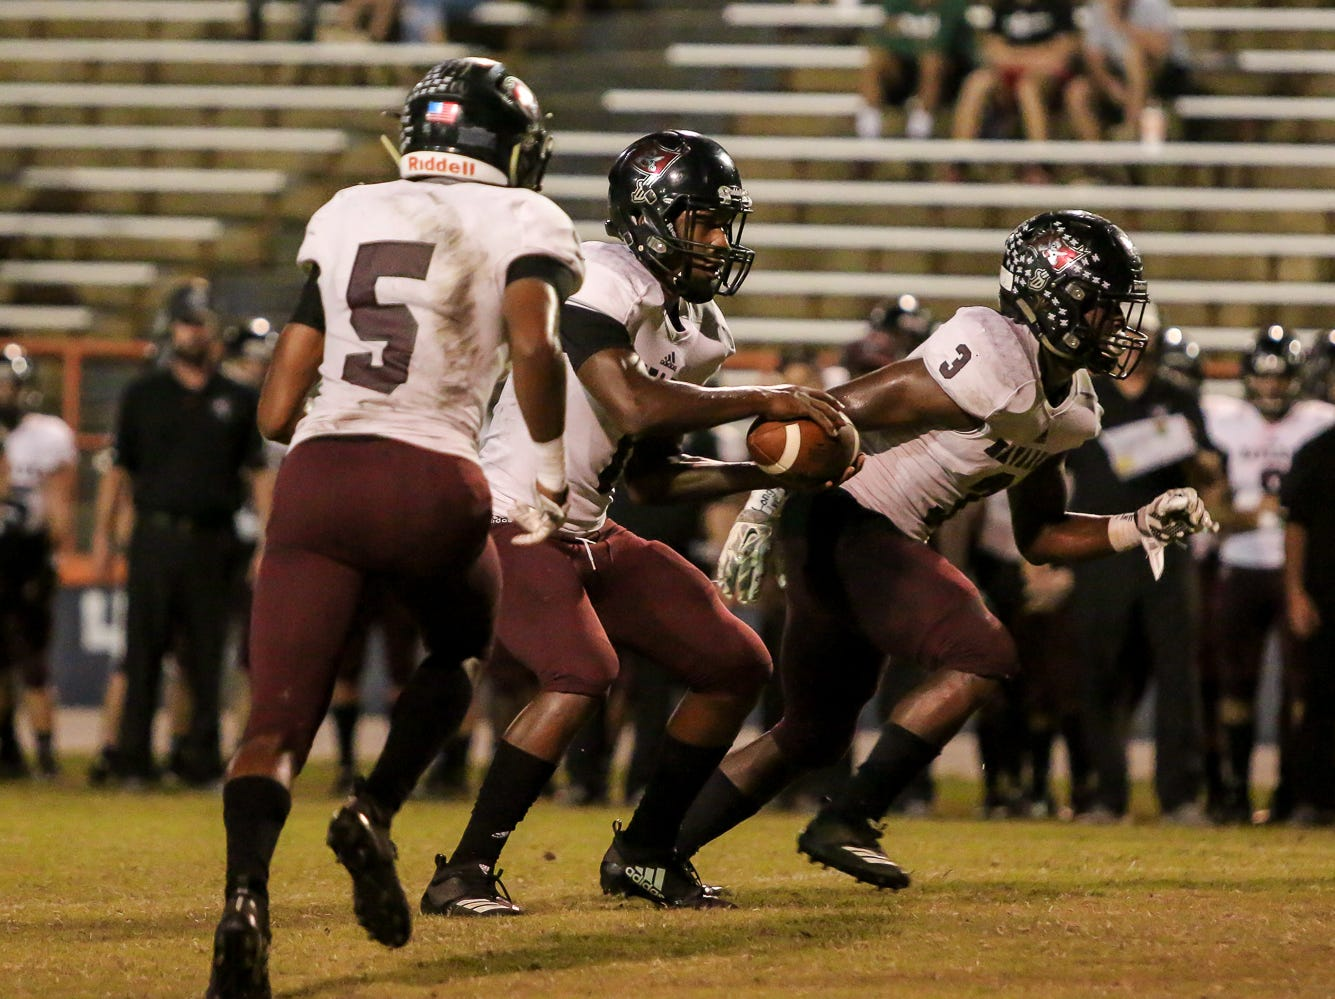 Navarre quarterback Marlon Courtney III (1) prepares to fake a hand off to Dante Wright (5) against the Gators at Escambia High School on Friday, October 5, 2018.